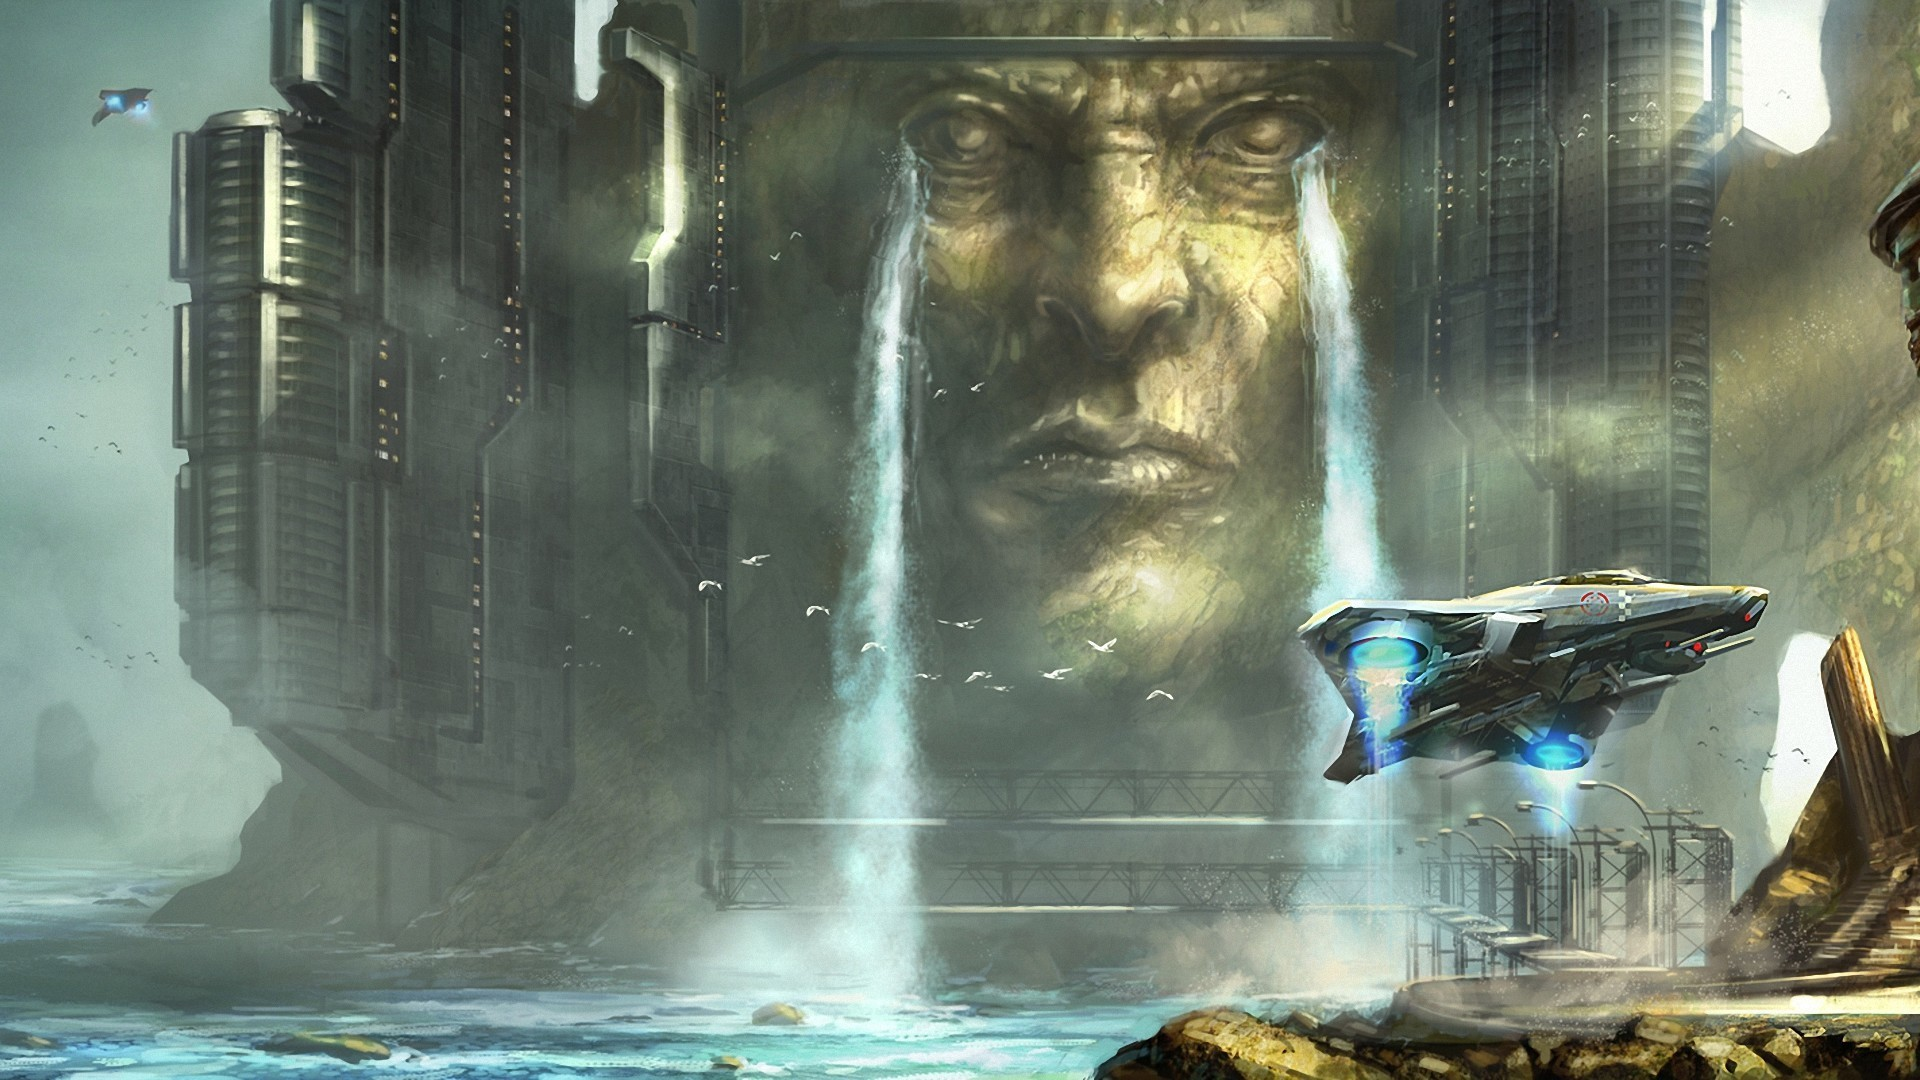 World Wallpaper Sci Fi Wallpaper: Fantastic World Ships Waterfalls Fantasy Sci-fi Science